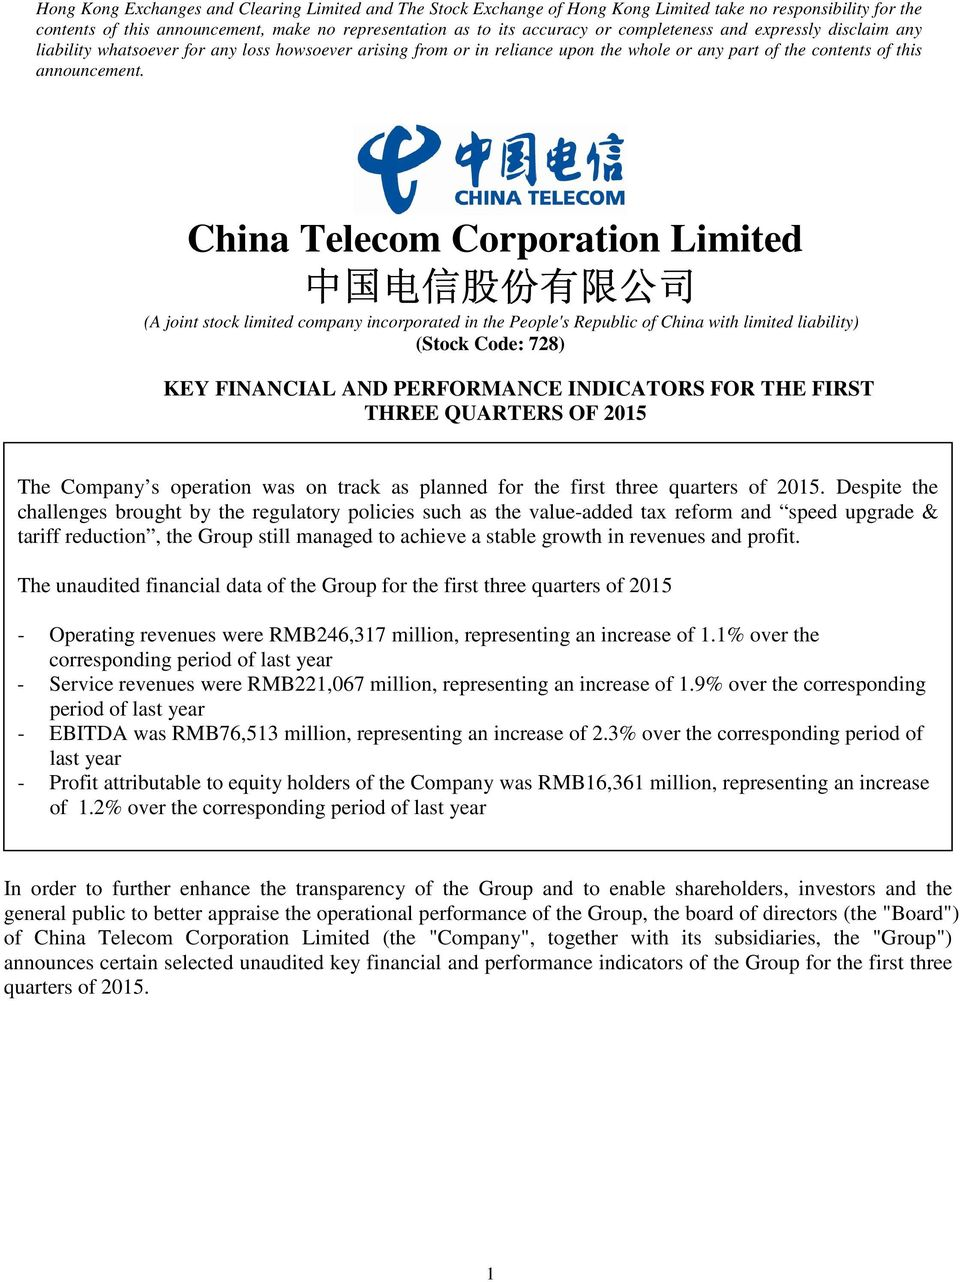 China Telecom Corporation Limited 中 国 电 信 股 份 有 限 公 司 (A joint stock limited company incorporated in the People's Republic of China with limited liability) (Stock Code: 728) KEY FINANCIAL AND